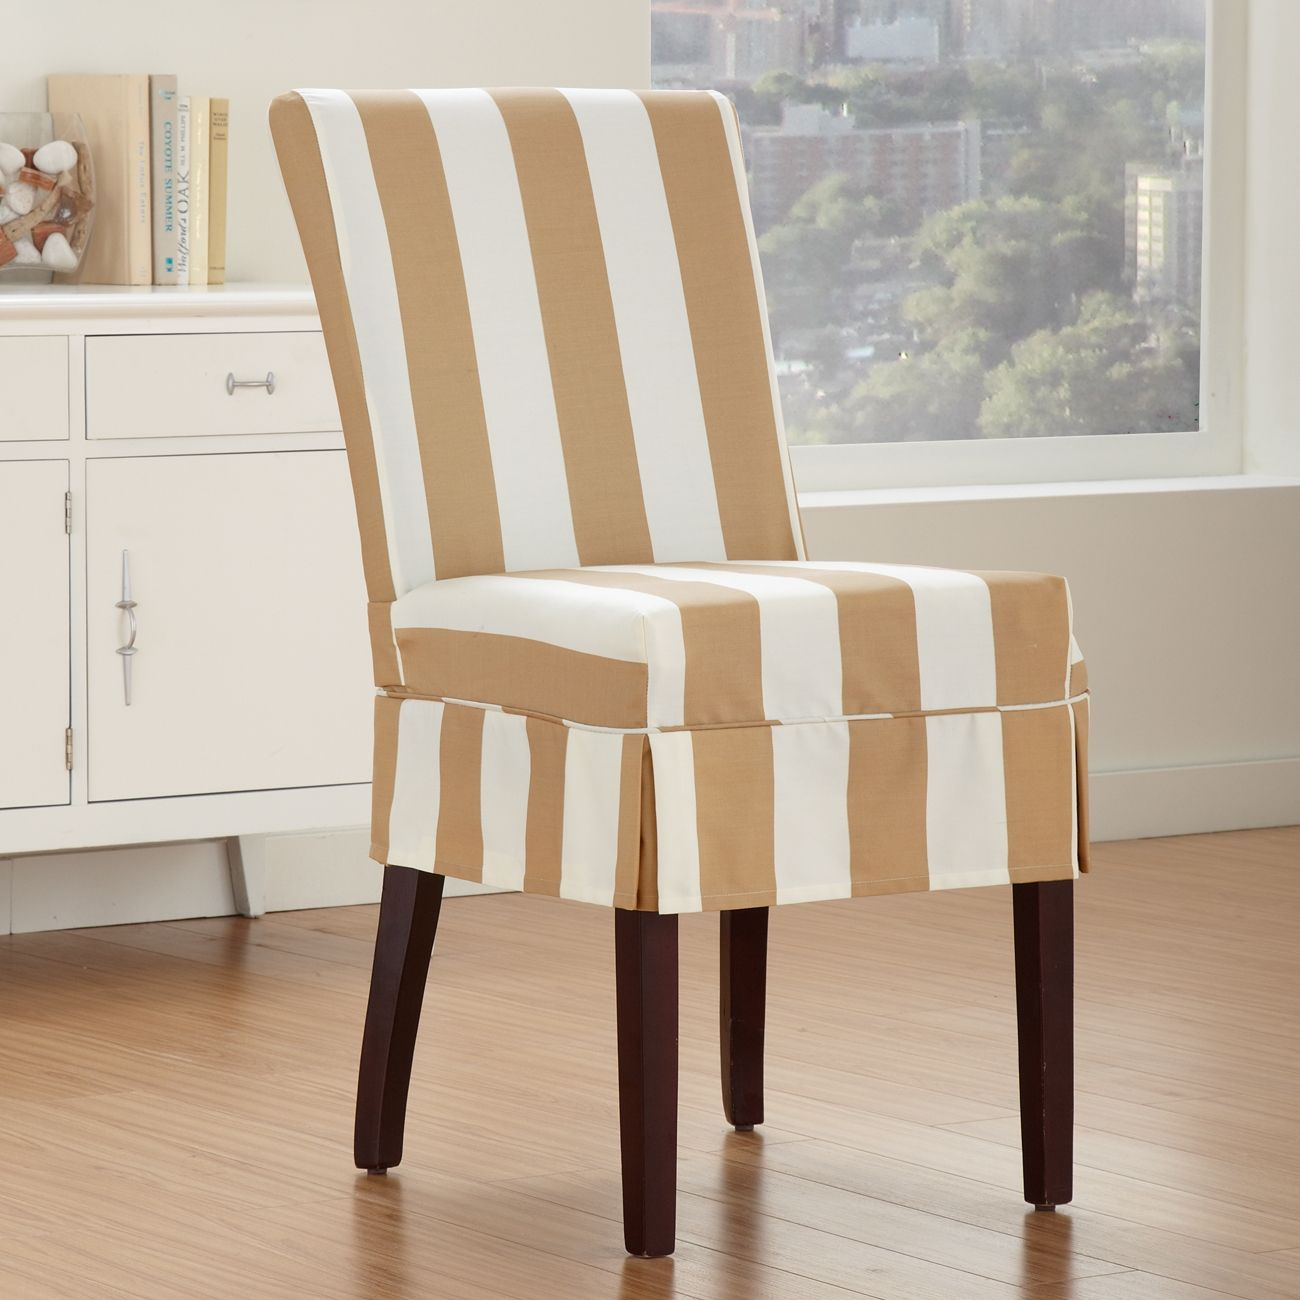 Beau Striped Chair Covers Dining Rooms